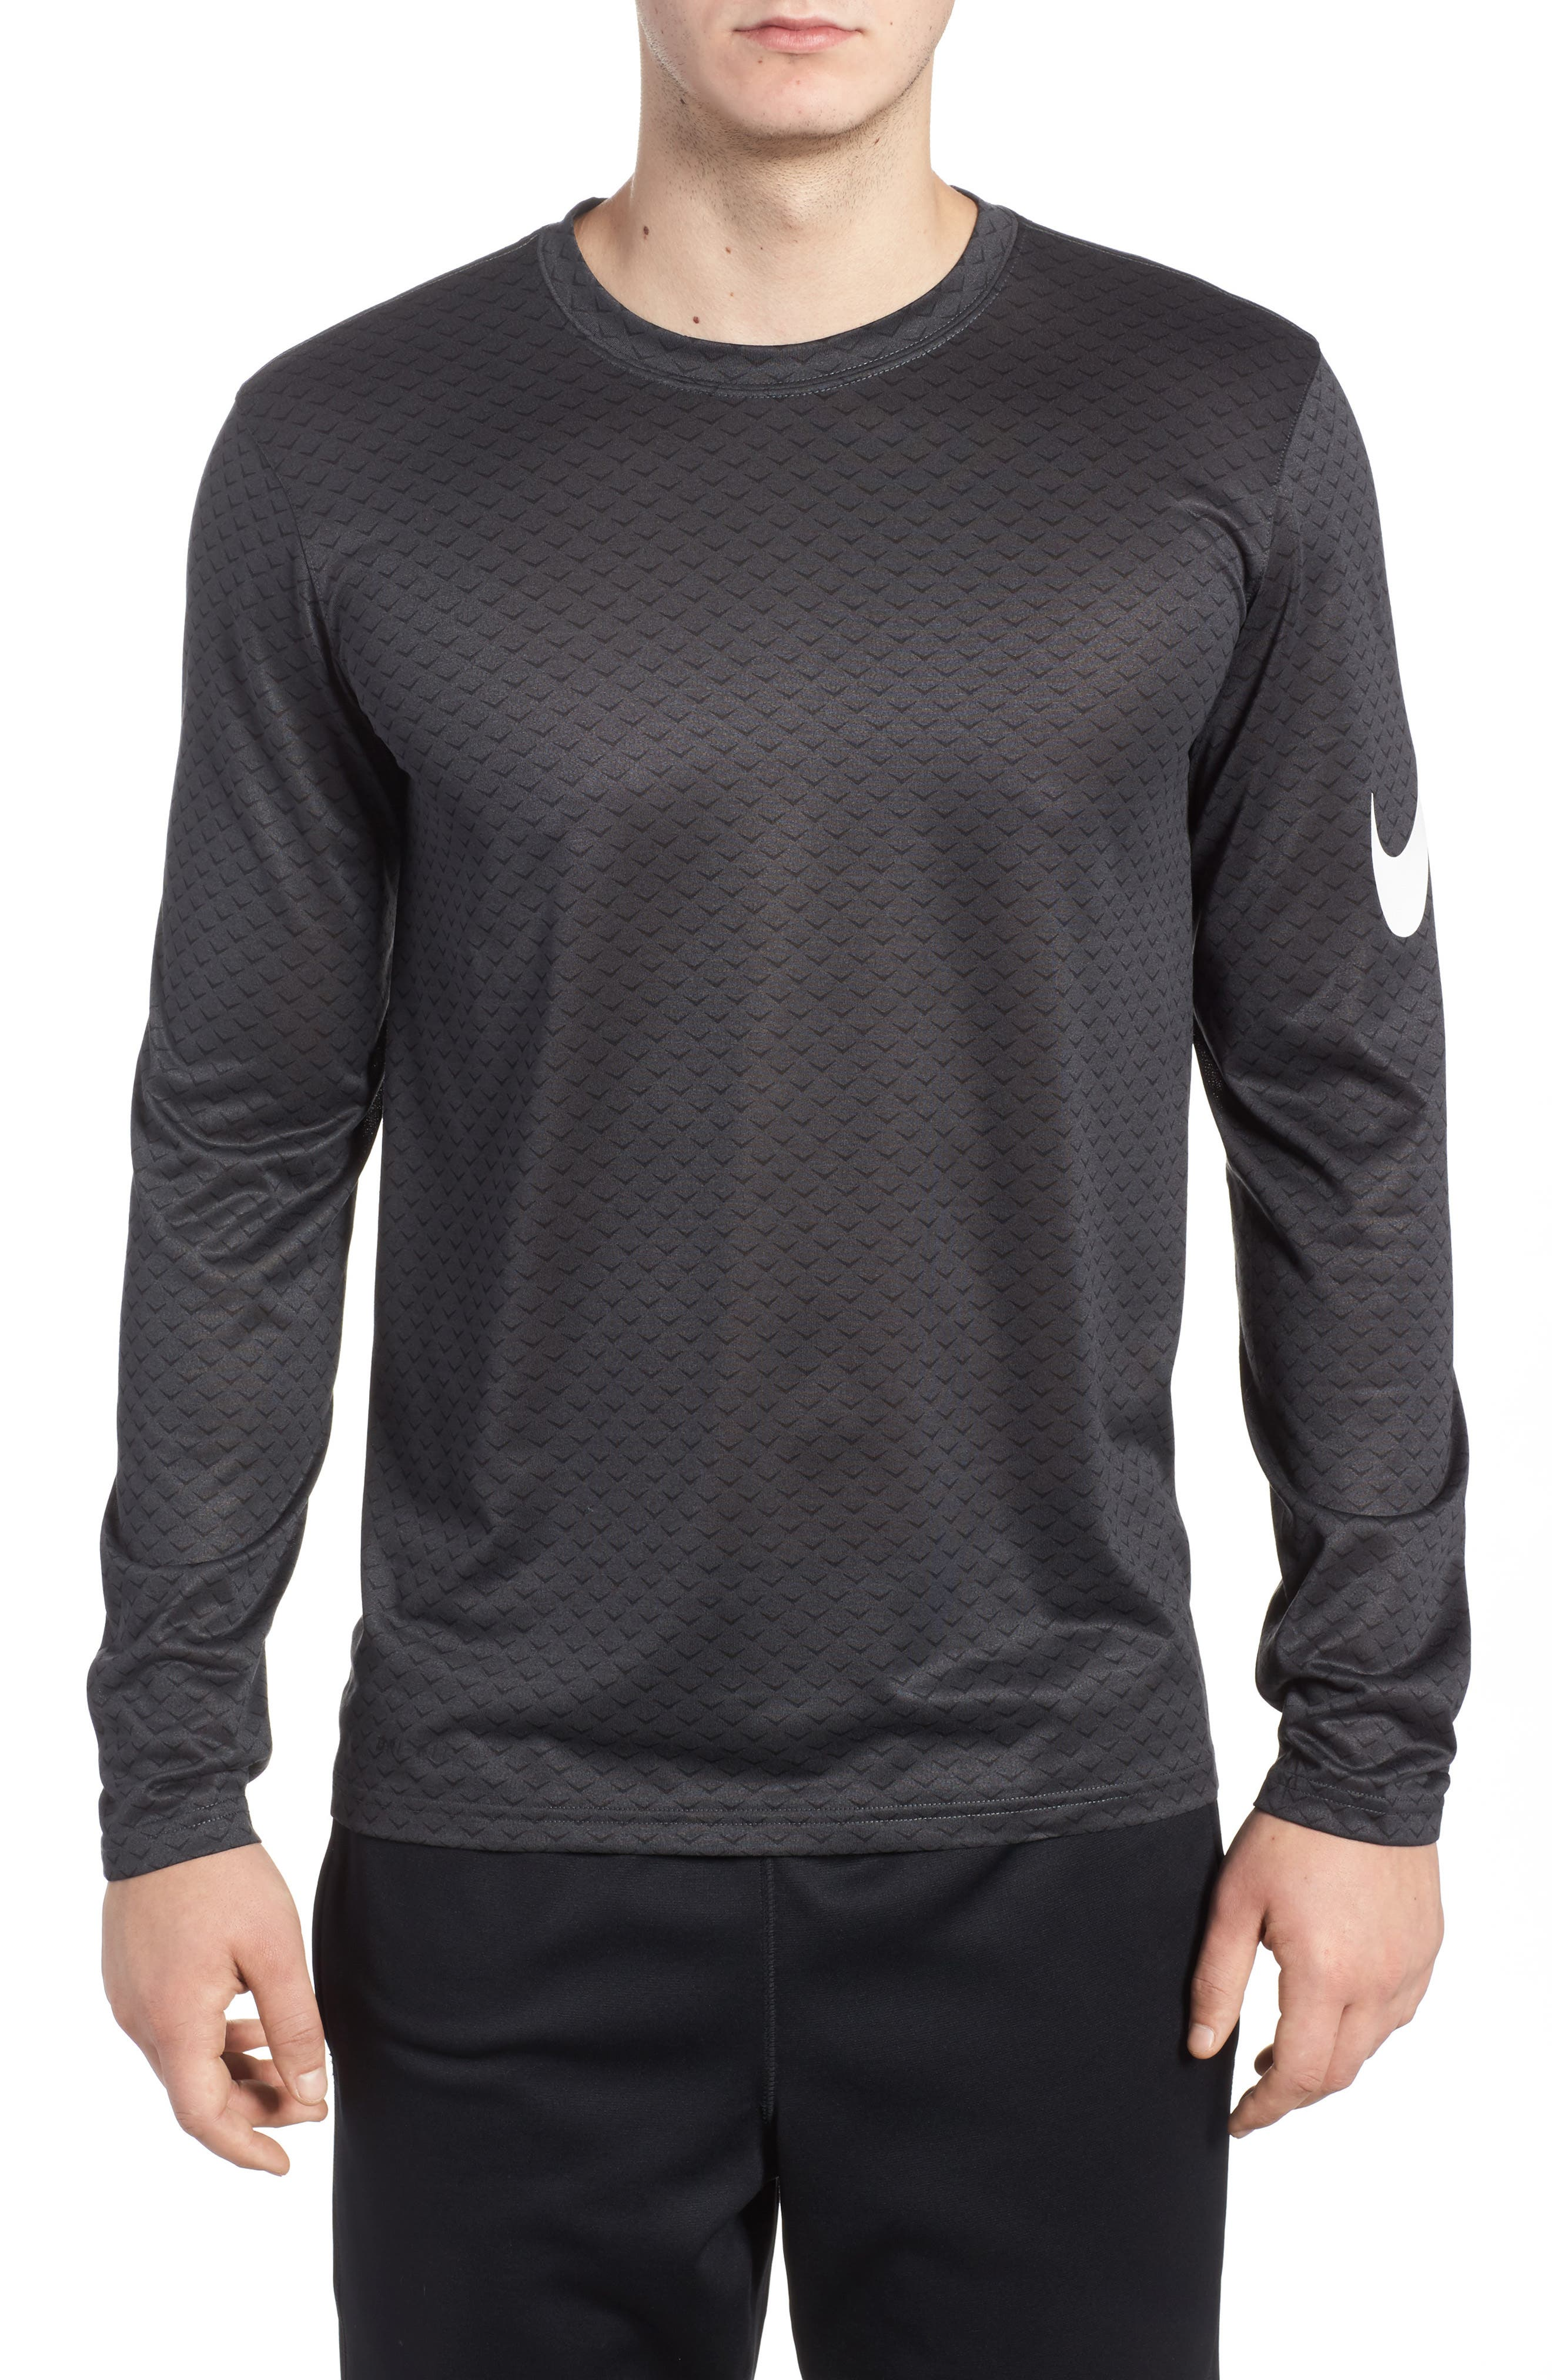 Dry Legend Training T-Shirt,                         Main,                         color, Anthracite/ White